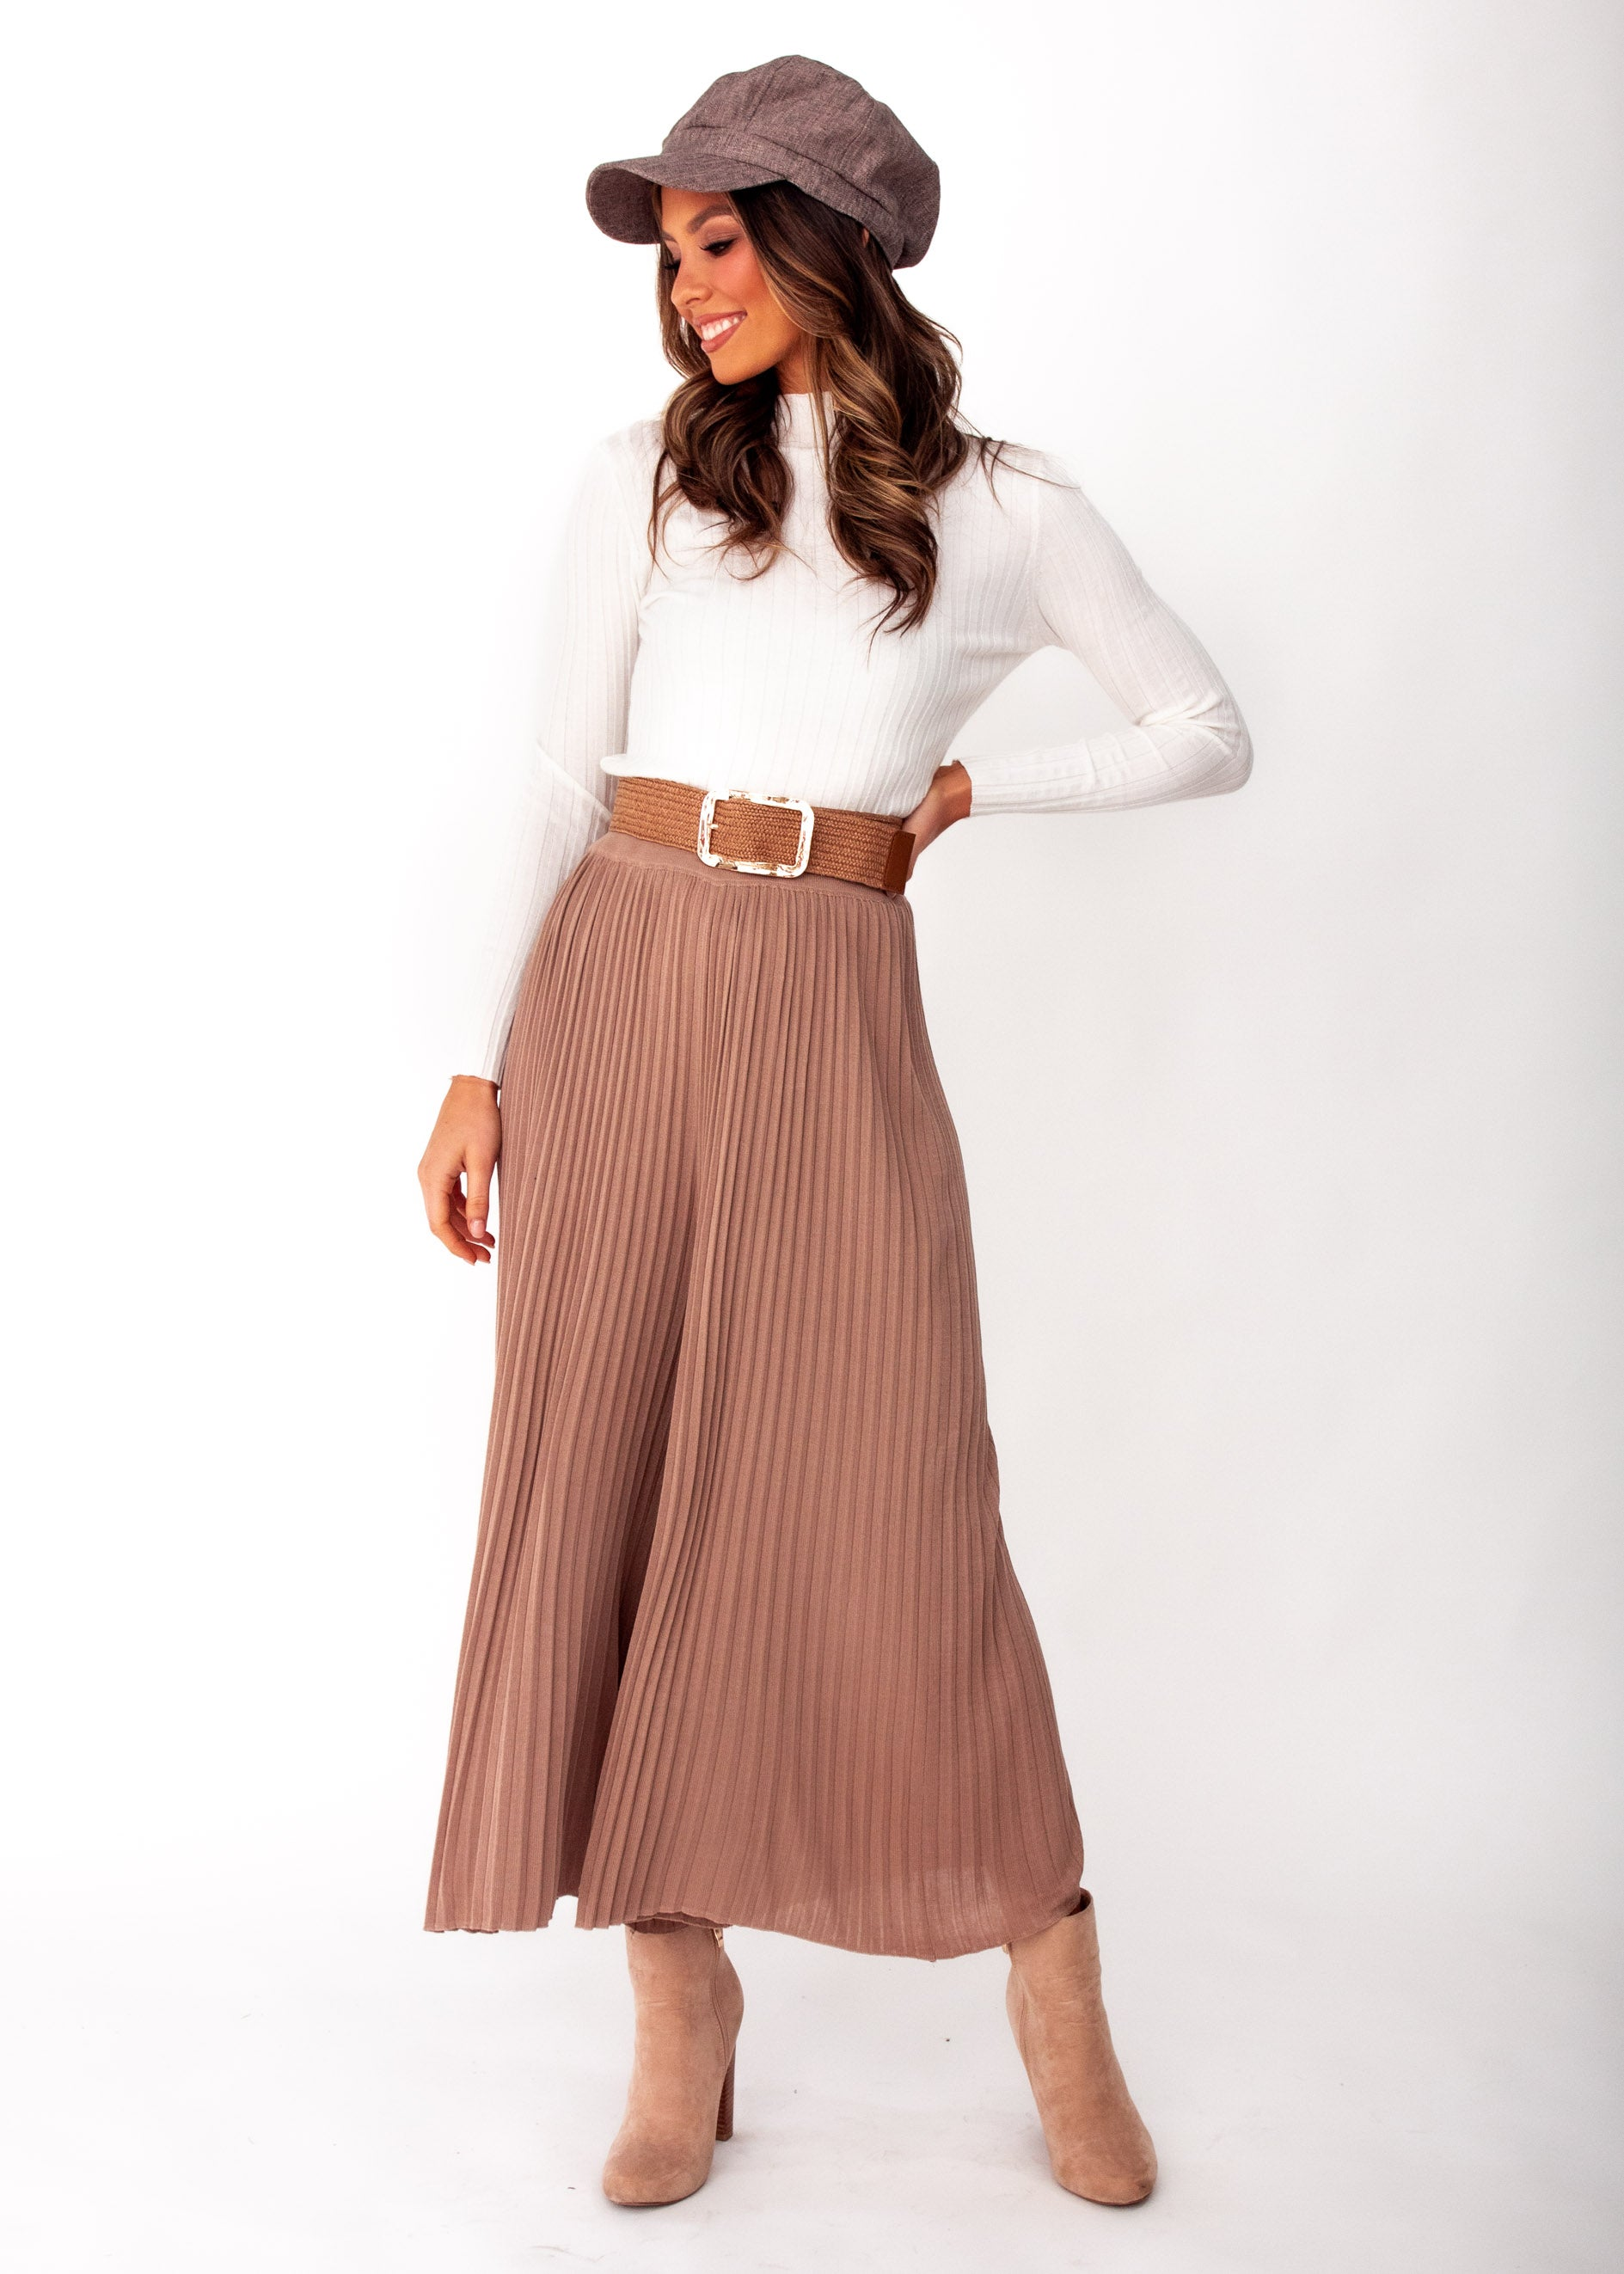 Women's Wintercrest Knit Culottes - Mocha